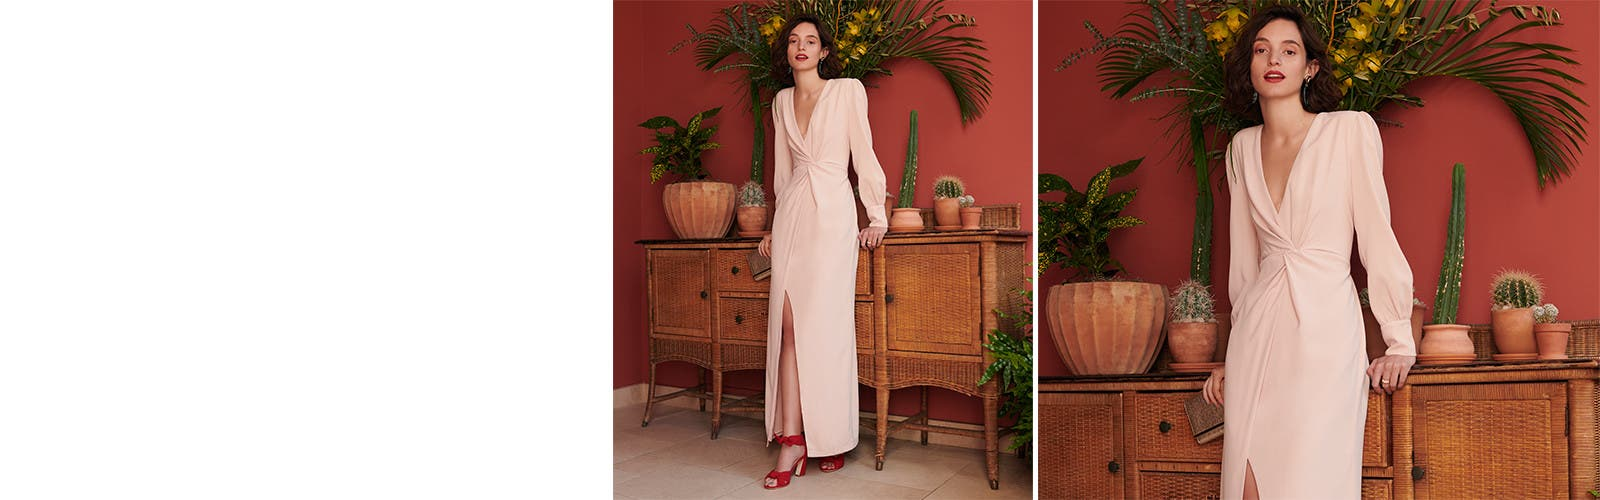 Vaneli Wedding Guest Outfits | Nordstrom